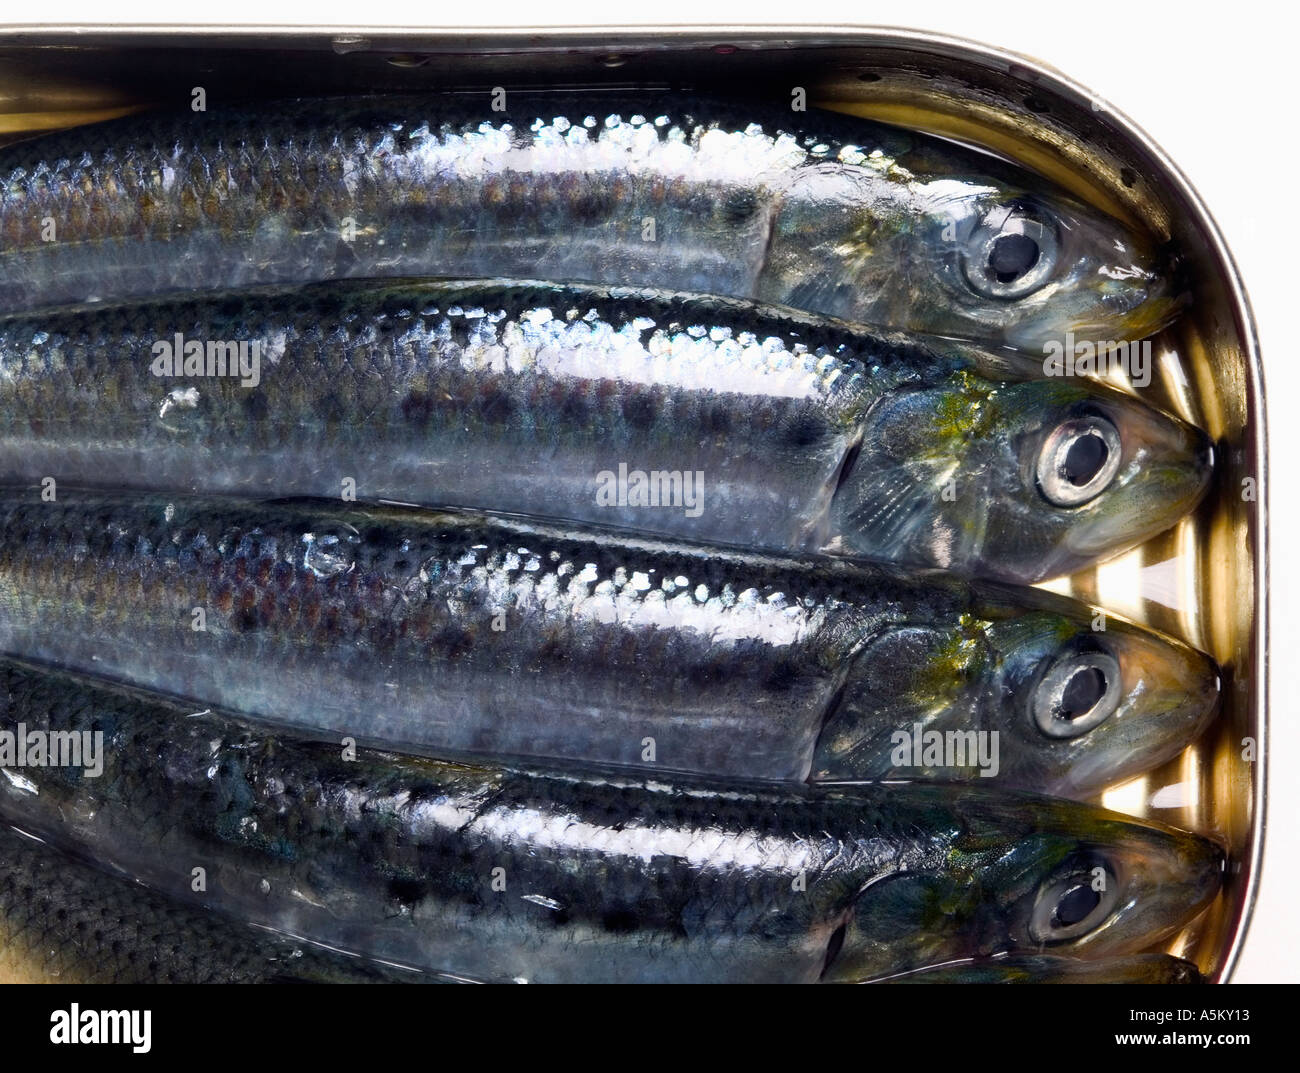 Can of sardines crammed together - Stock Image